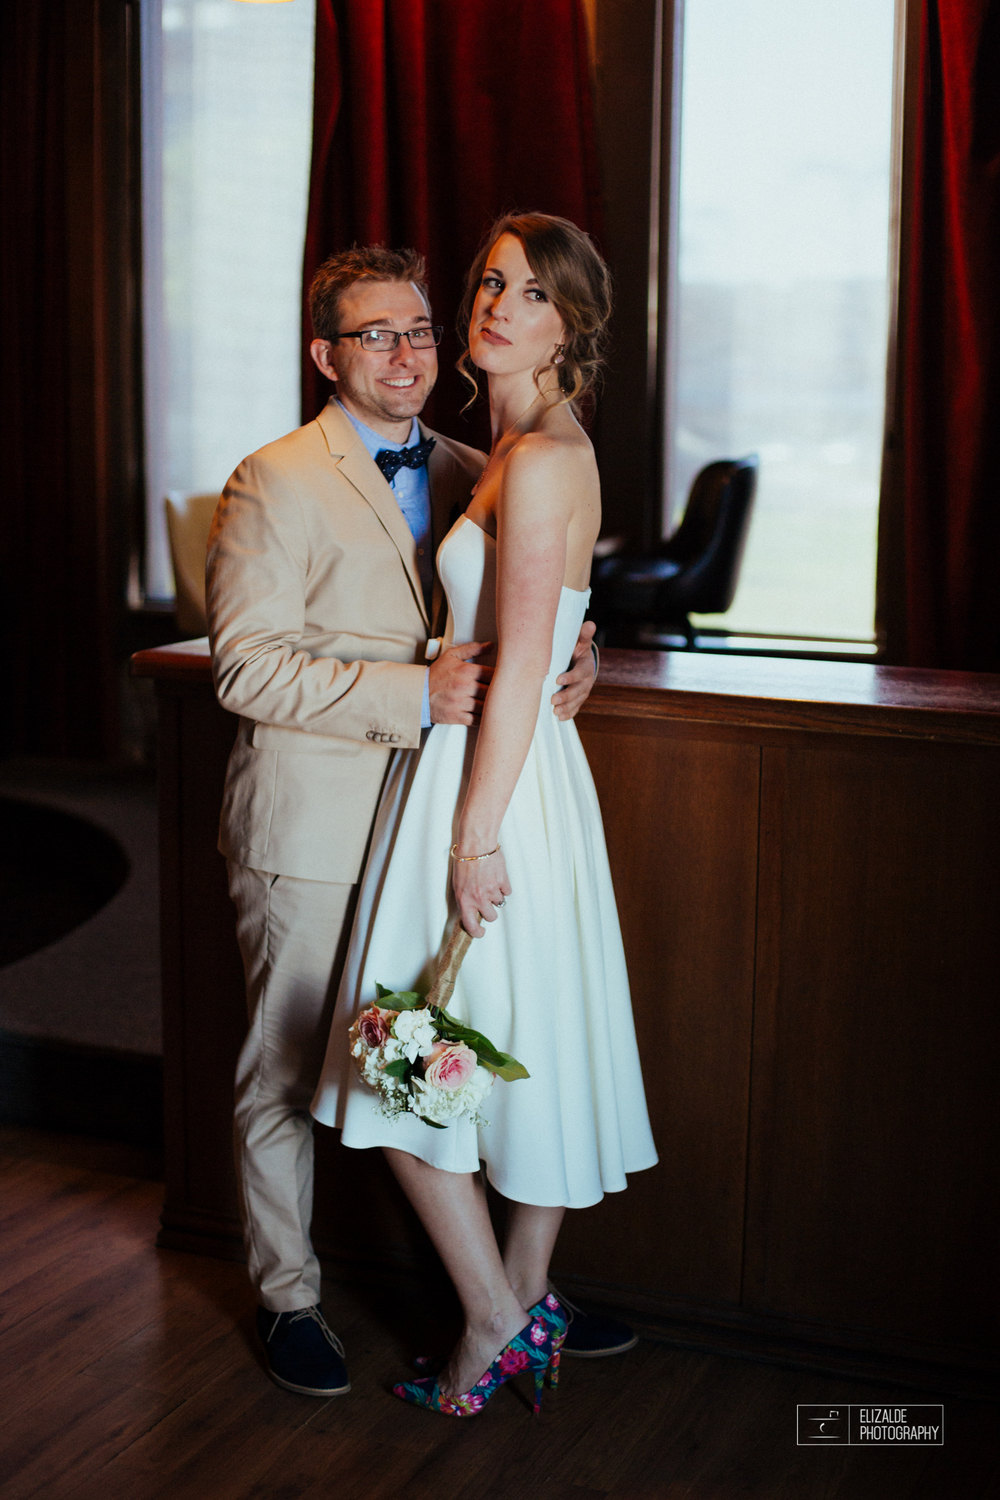 Denton wedding photographer_DFW photographer_elizalde photography_juliana and jeff13.jpg